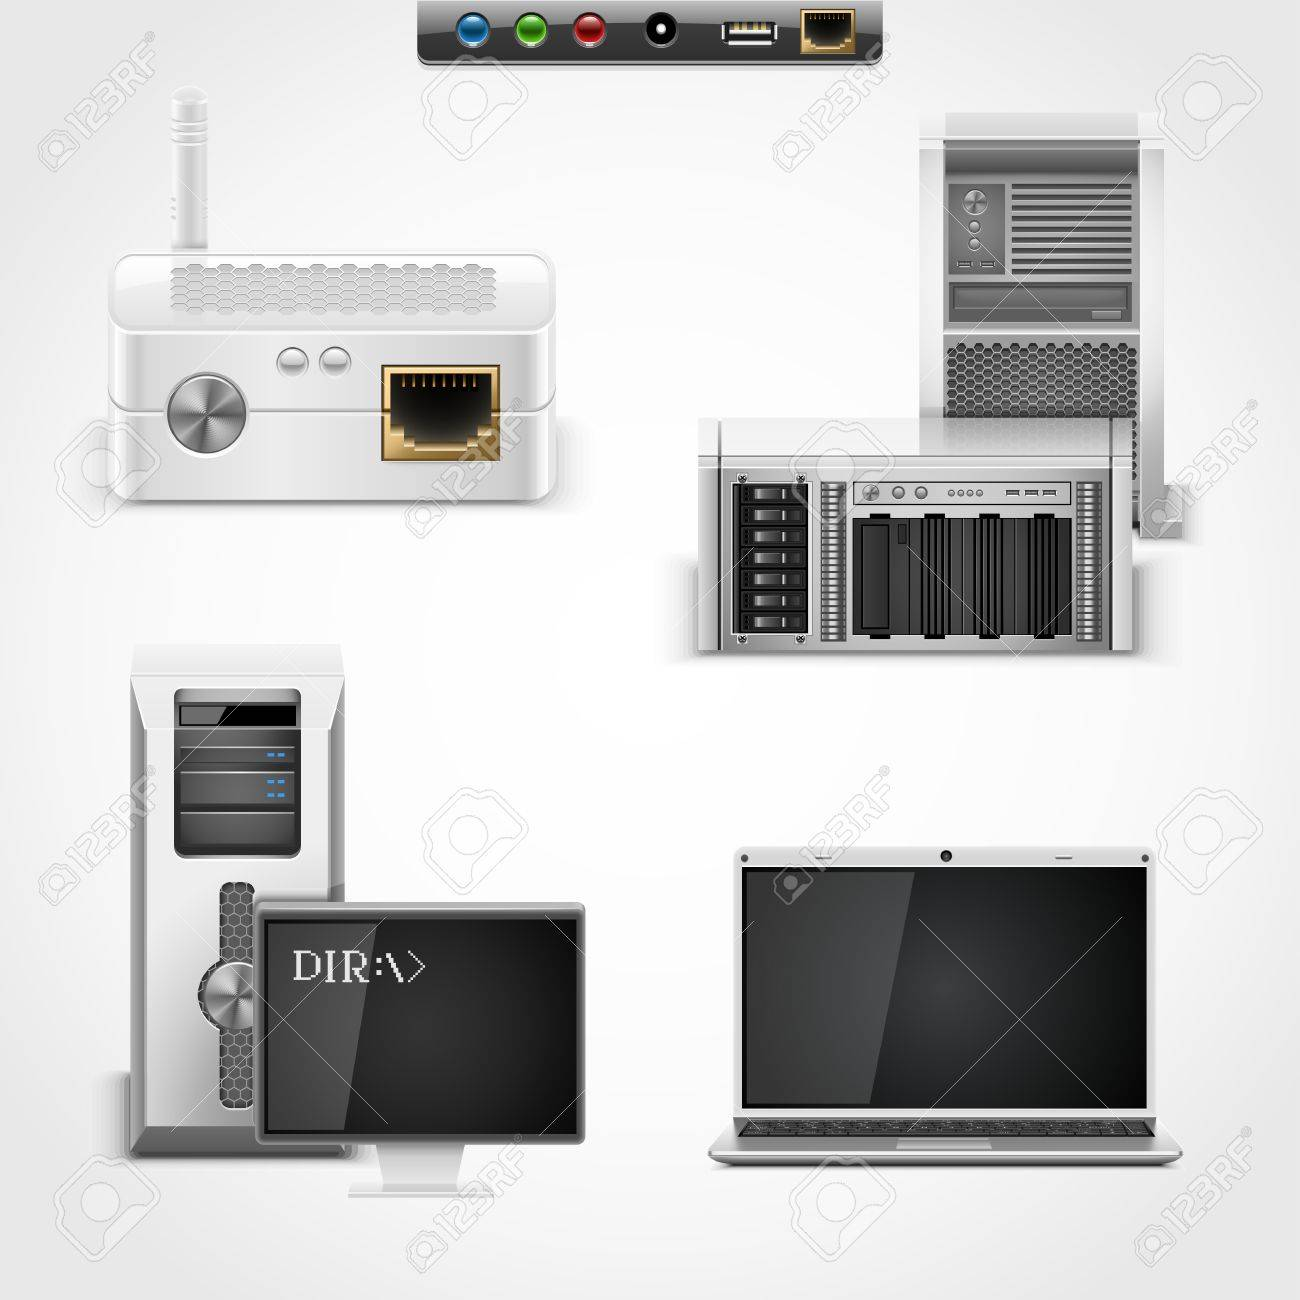 server and networking vector icons Stock Vector - 14850453